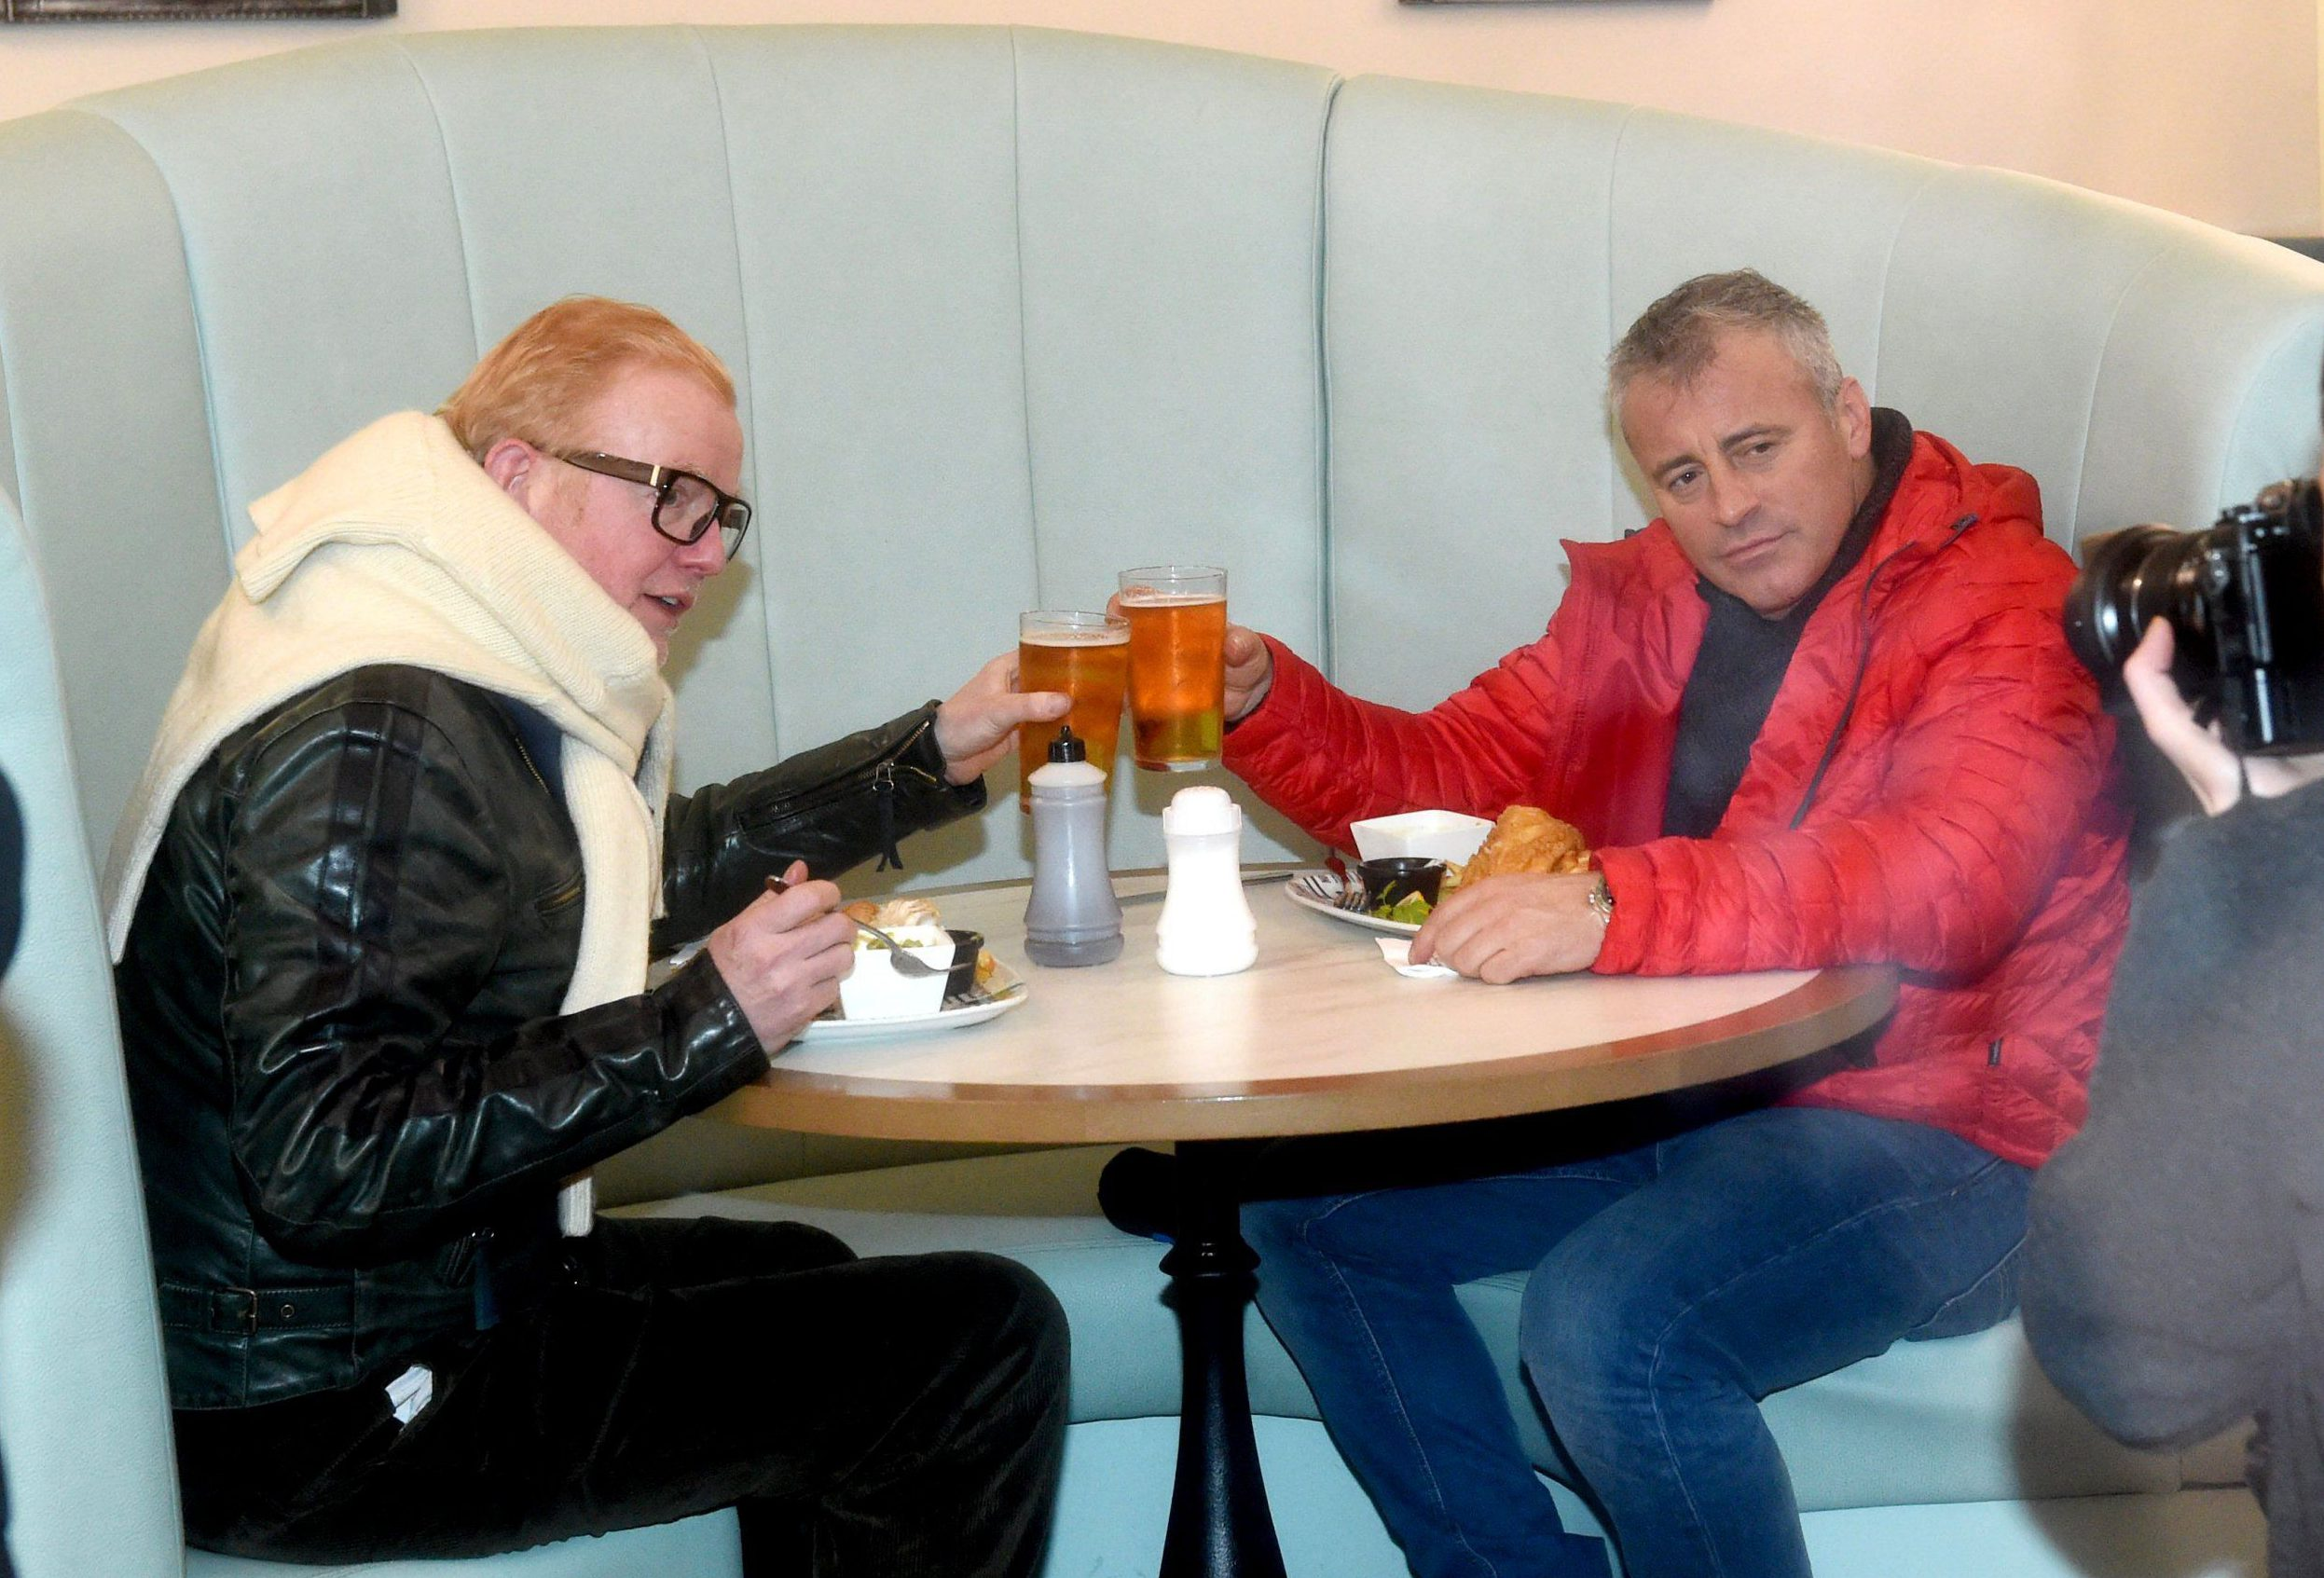 Mandatory Credit: Photo by MCPIX/REX/Shutterstock (5588863d)nChris Evans and Matt LeBlancn'Top Gear' TV show filming, Blackpool, Britain - 19 Feb 2016nTop Beer !!! New presenters Chris Evans and Matt LeBlanc celebrate the end of their race to Blackpool with fish n chips and beer.n